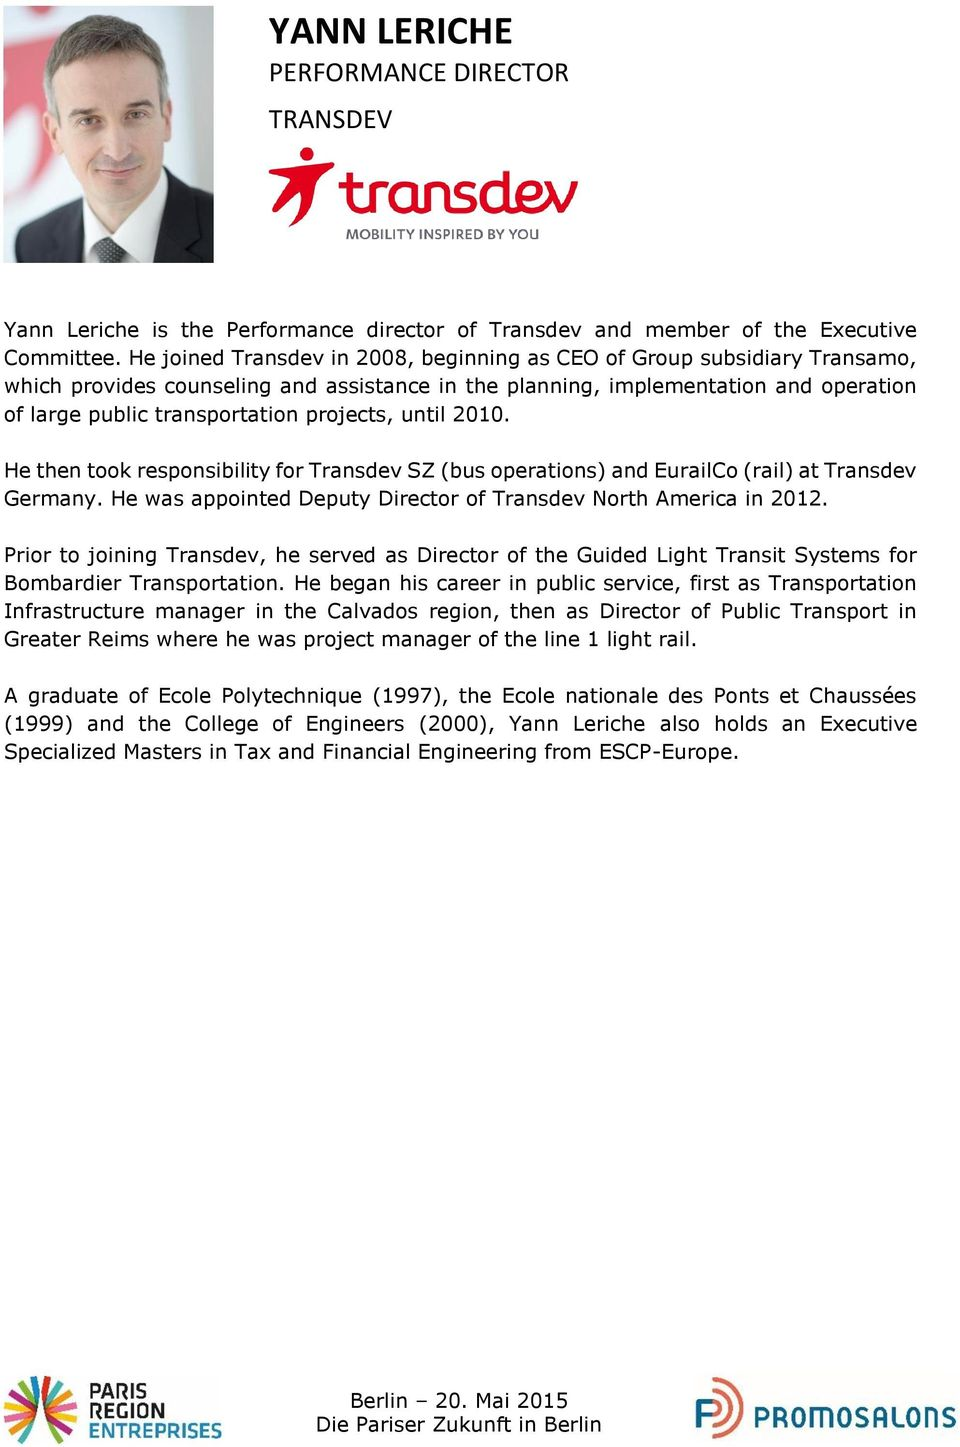 projects, until 2010. He then took responsibility for Transdev SZ (bus operations) and EurailCo (rail) at Transdev Germany. He was appointed Deputy Director of Transdev North America in 2012.